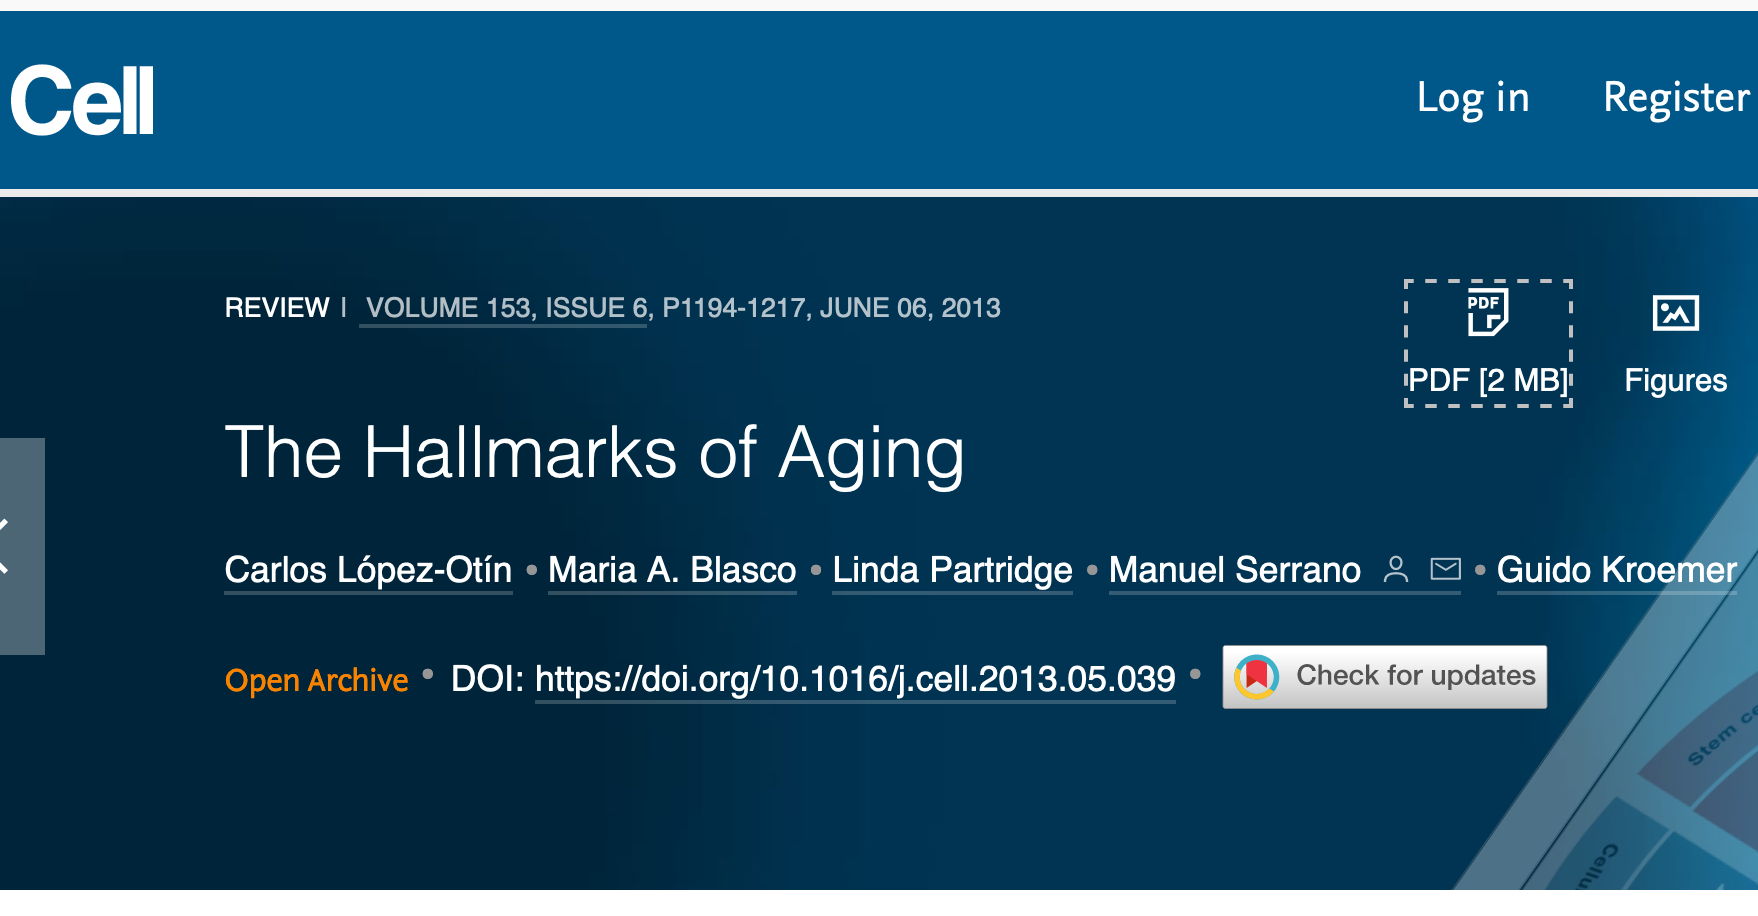 ADVANCED:  This 2013 paper in Cell journal is a reasonable place for a scientist to begin research in this area.